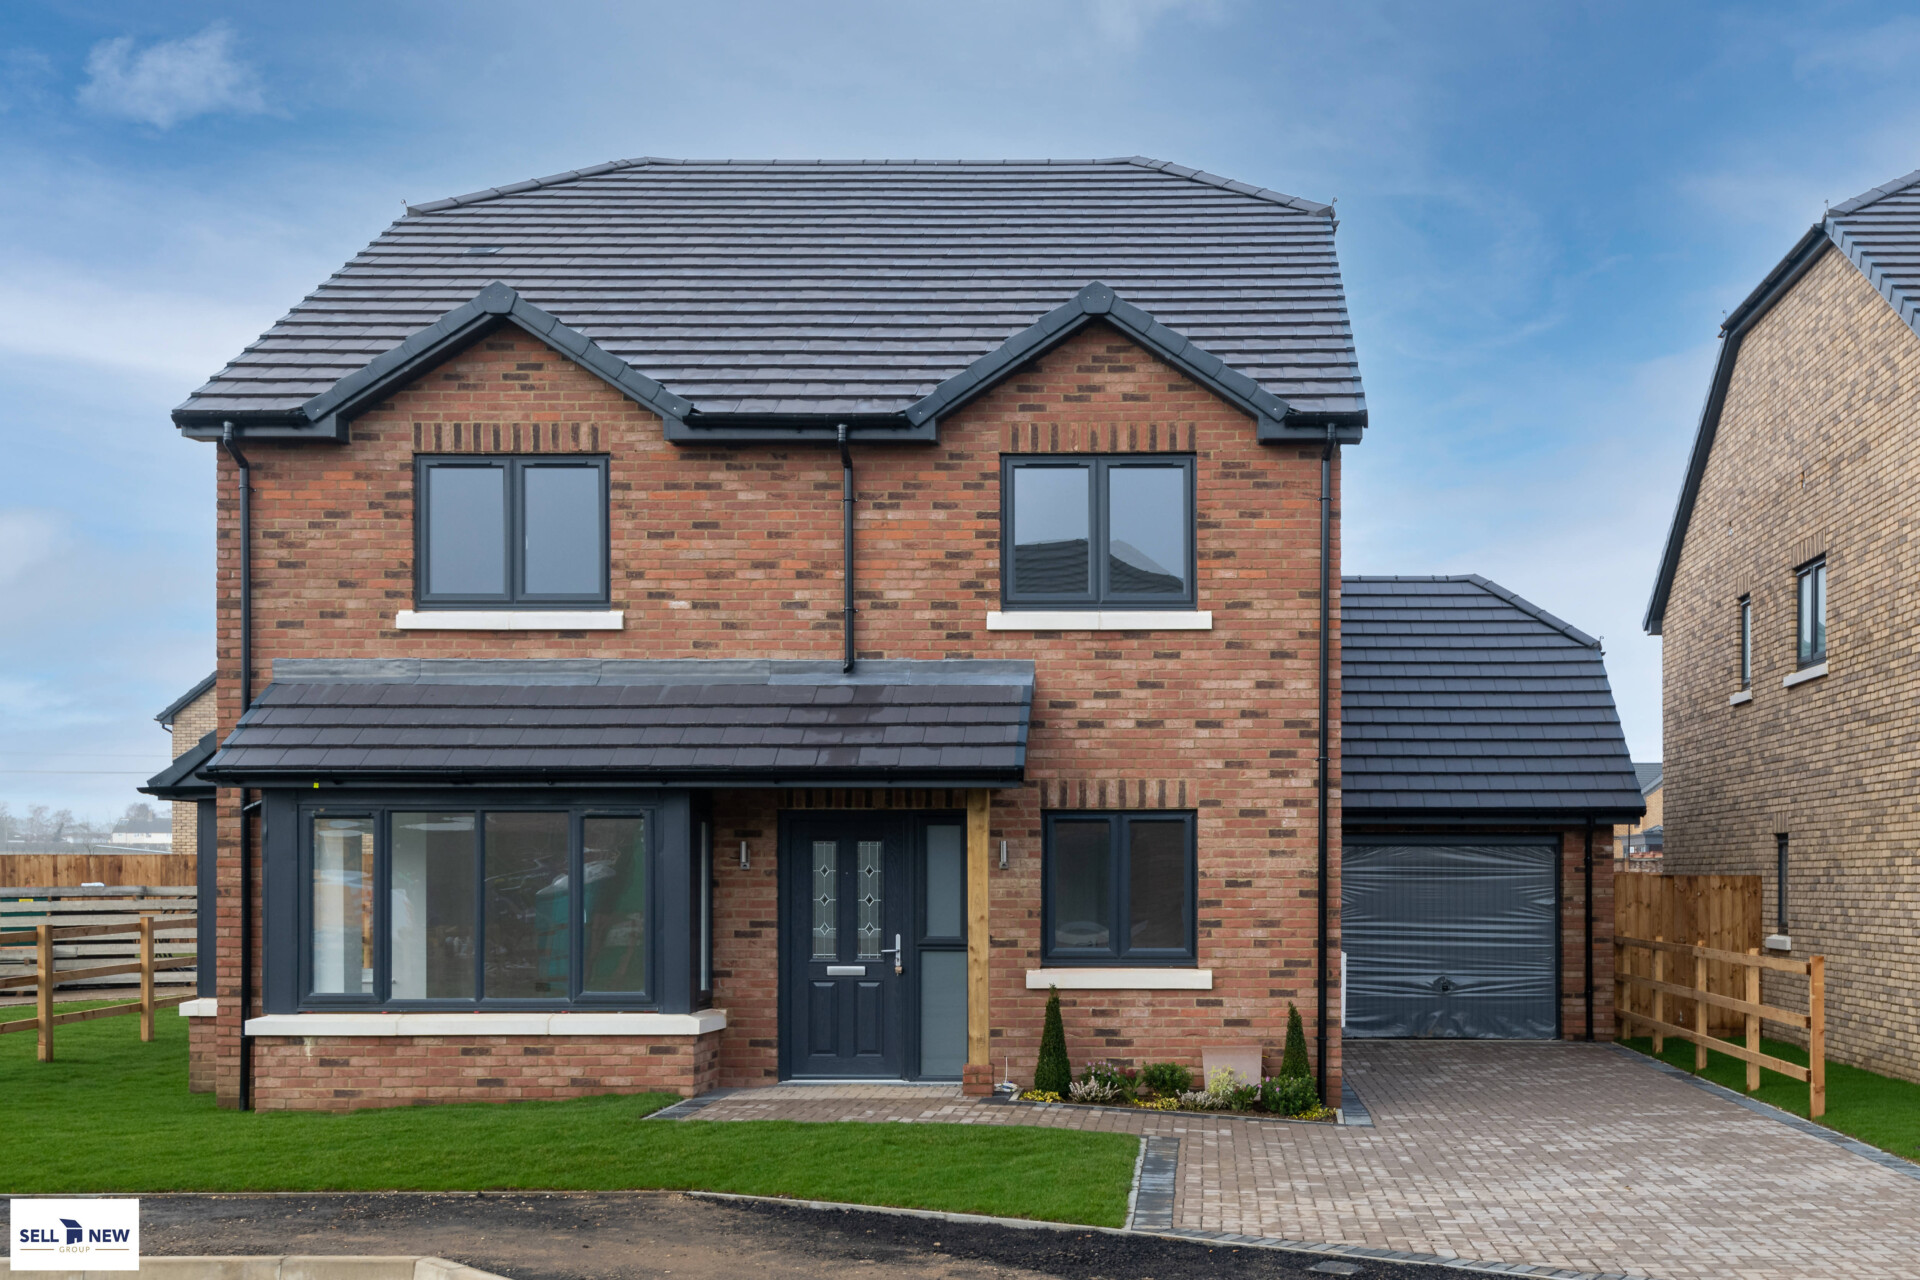 Plot 4 Earls Close Clifton – Spacious detached family home in award winning development